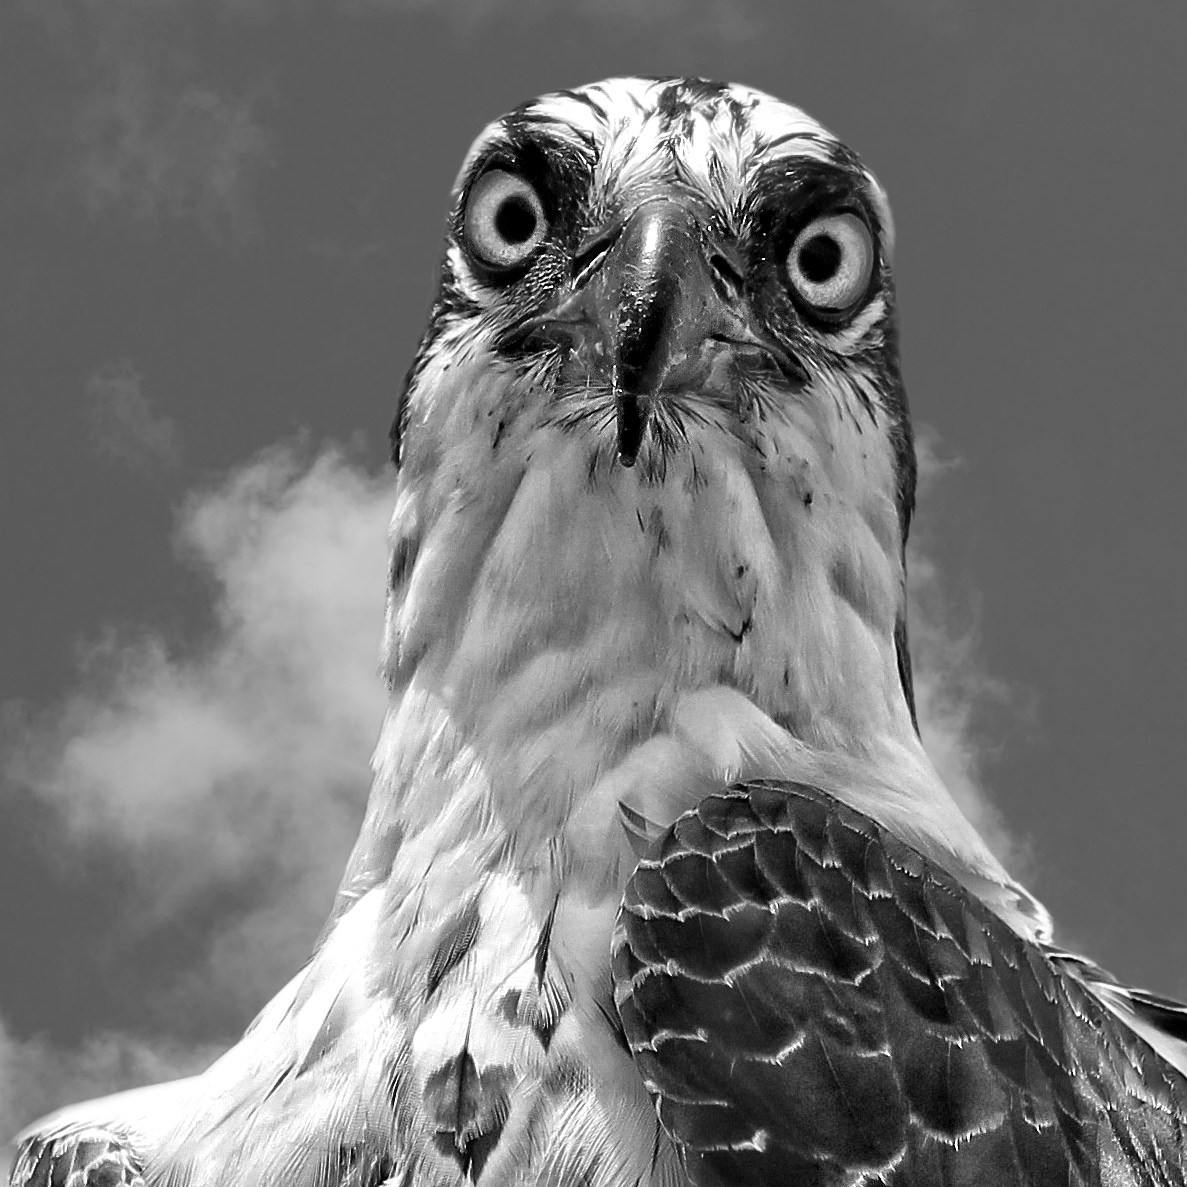 eye contact with a raptor